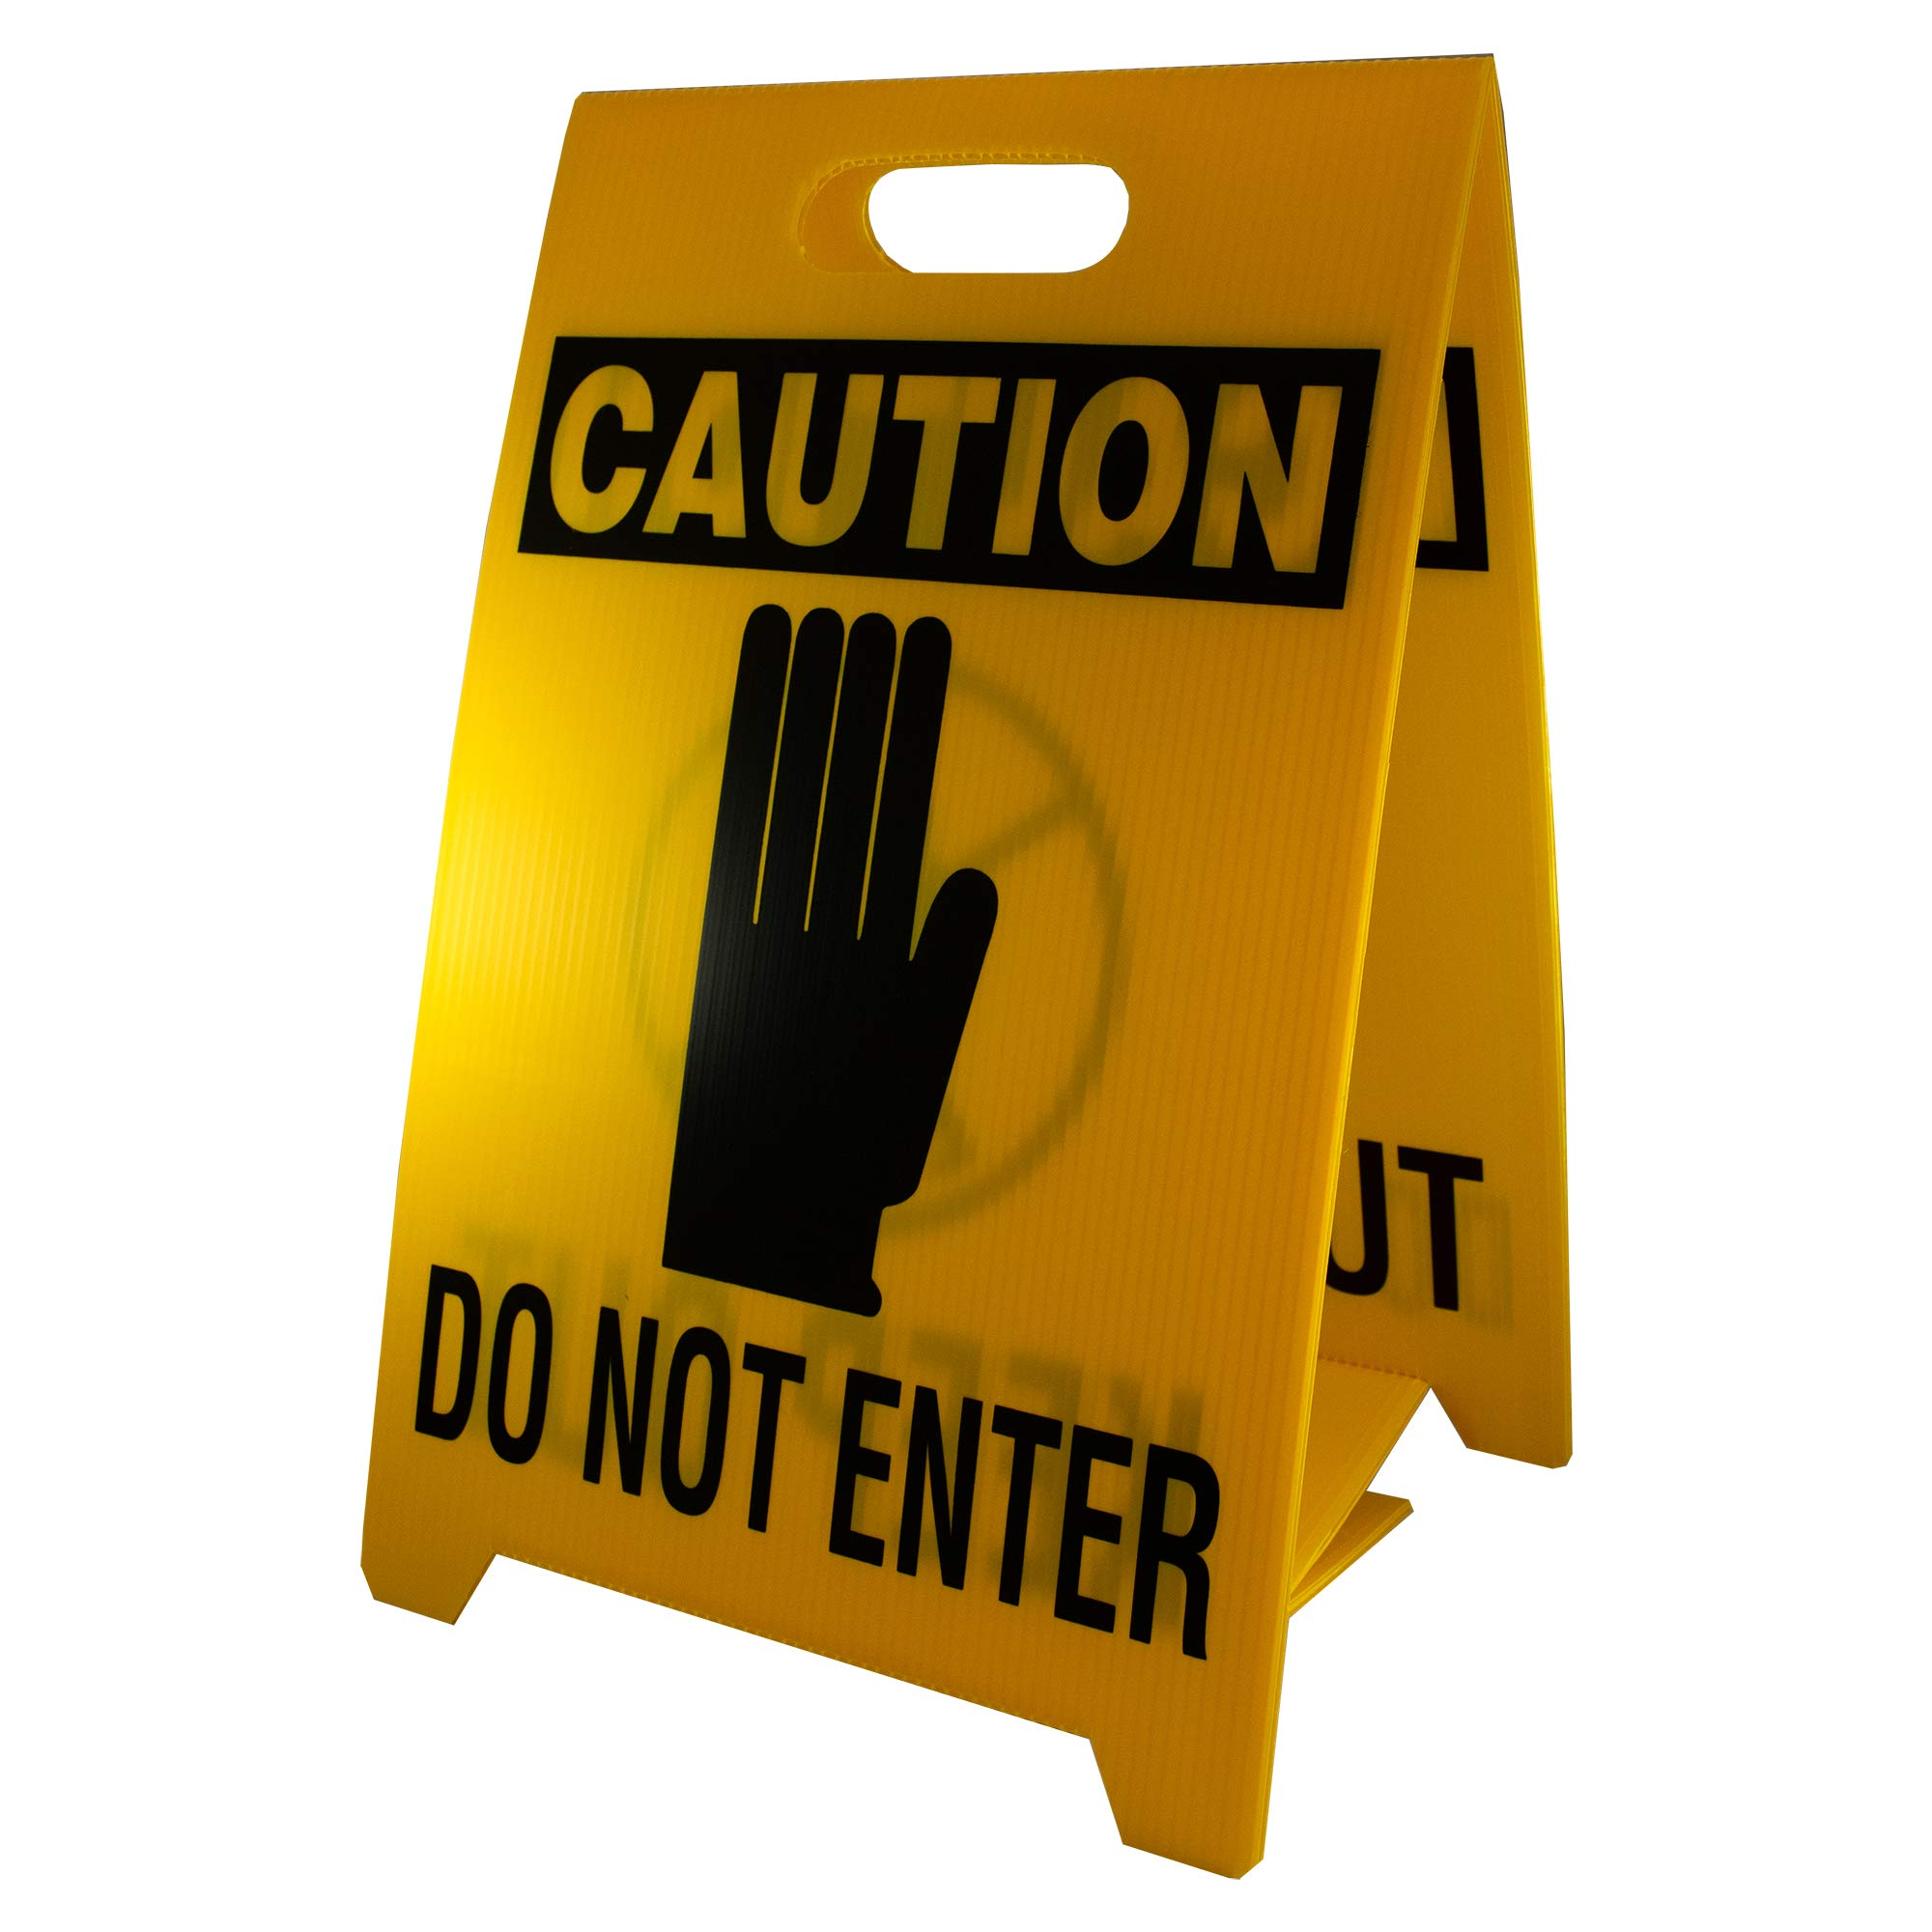 NMC FS8 Double Sided Floor Sign, Legend ''CAUTION - DO NOT ENTER KEEP OUT'' with Graphic, 12'' Length x 20'' Height, Coroplast, Black on Yellow